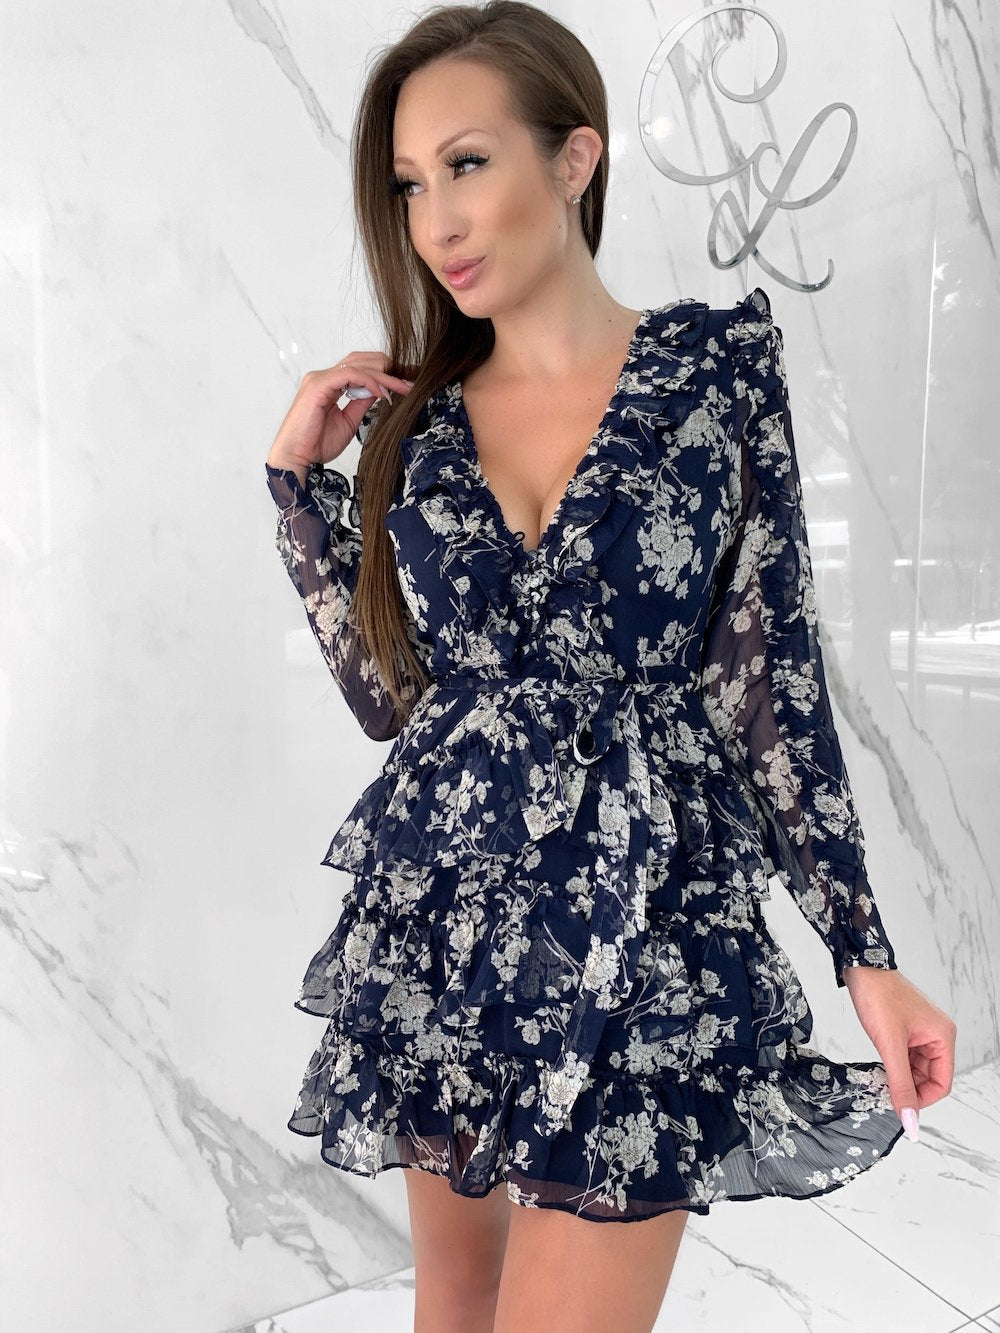 Sweet Like Me Dress, Women's Navy Dresses